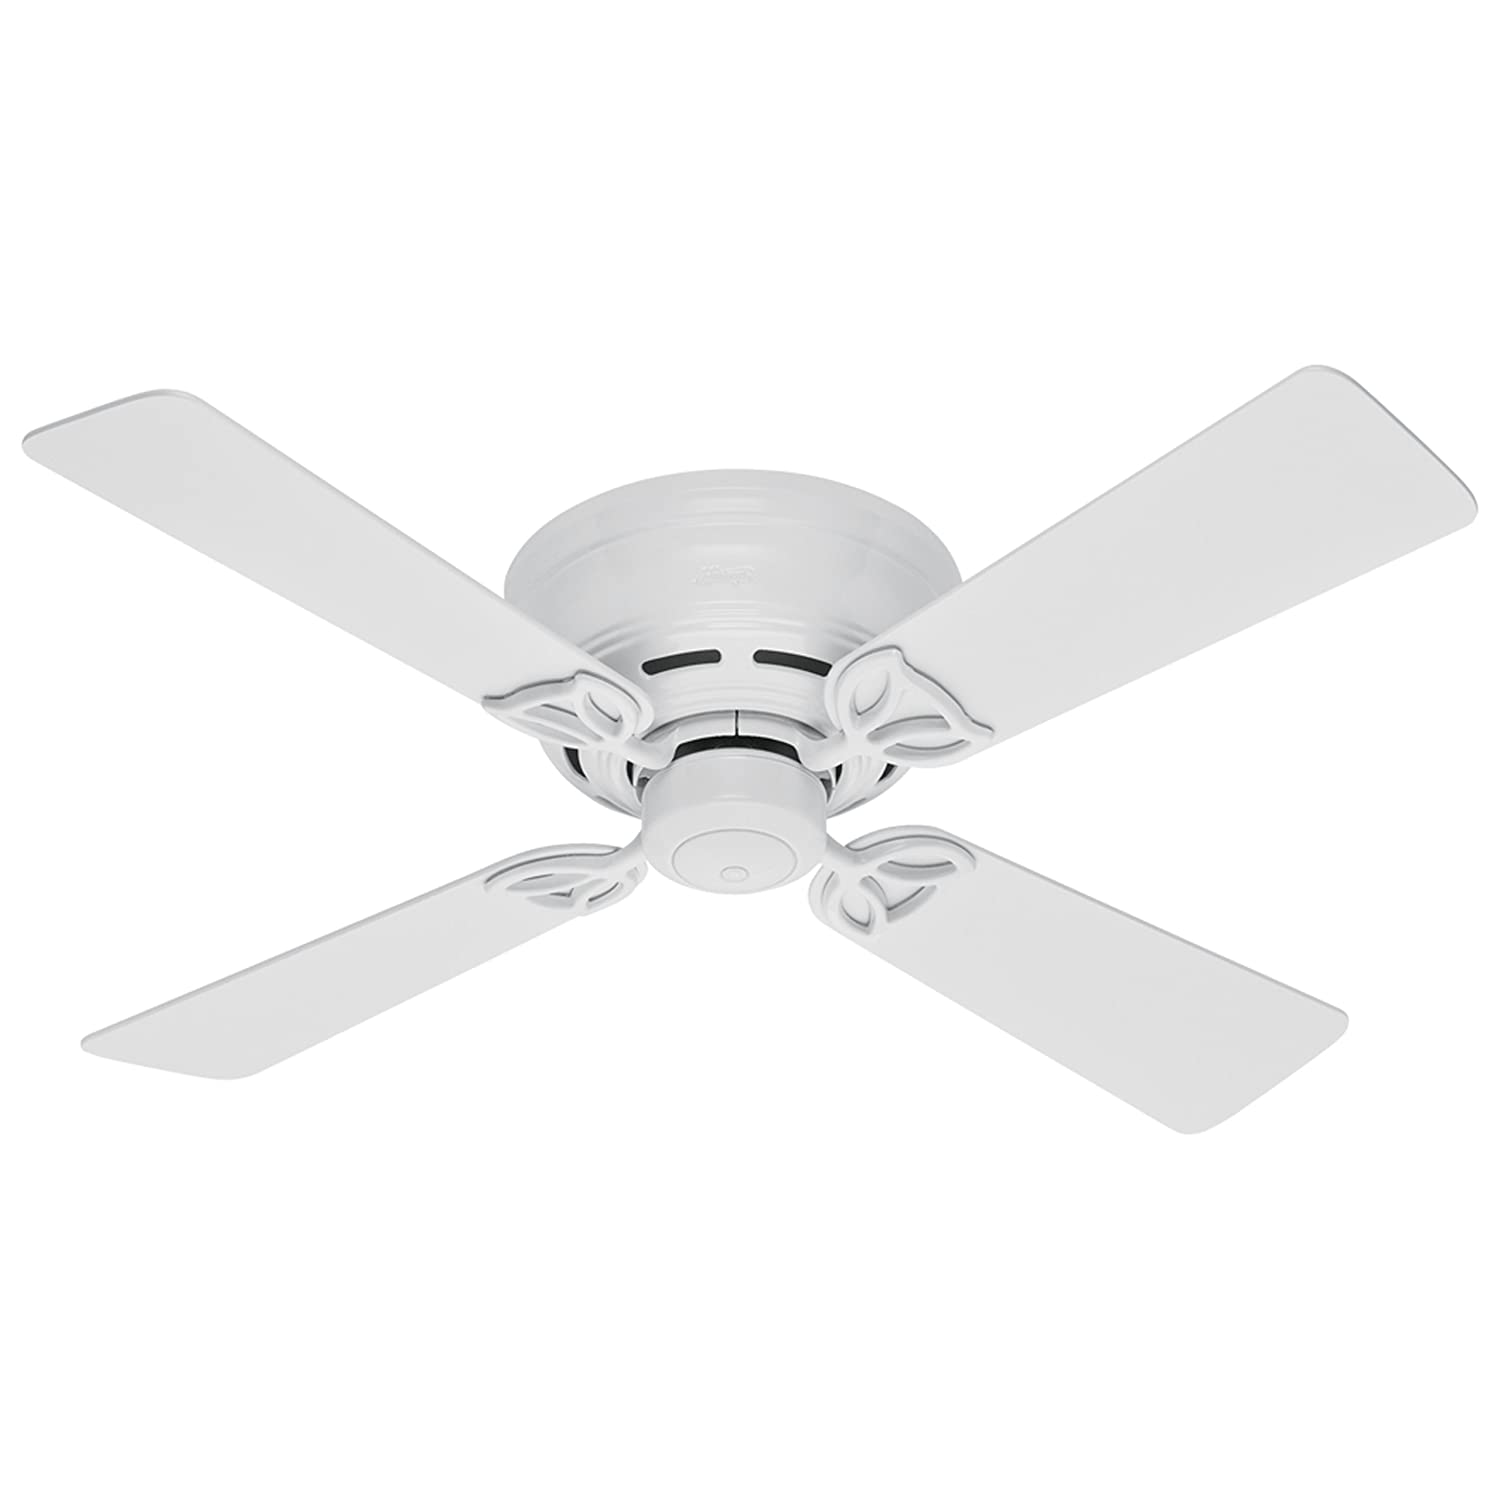 Hunter 23866 42-Inch White Lowprofile II Fan - Ceiling Fans - Amazon.com